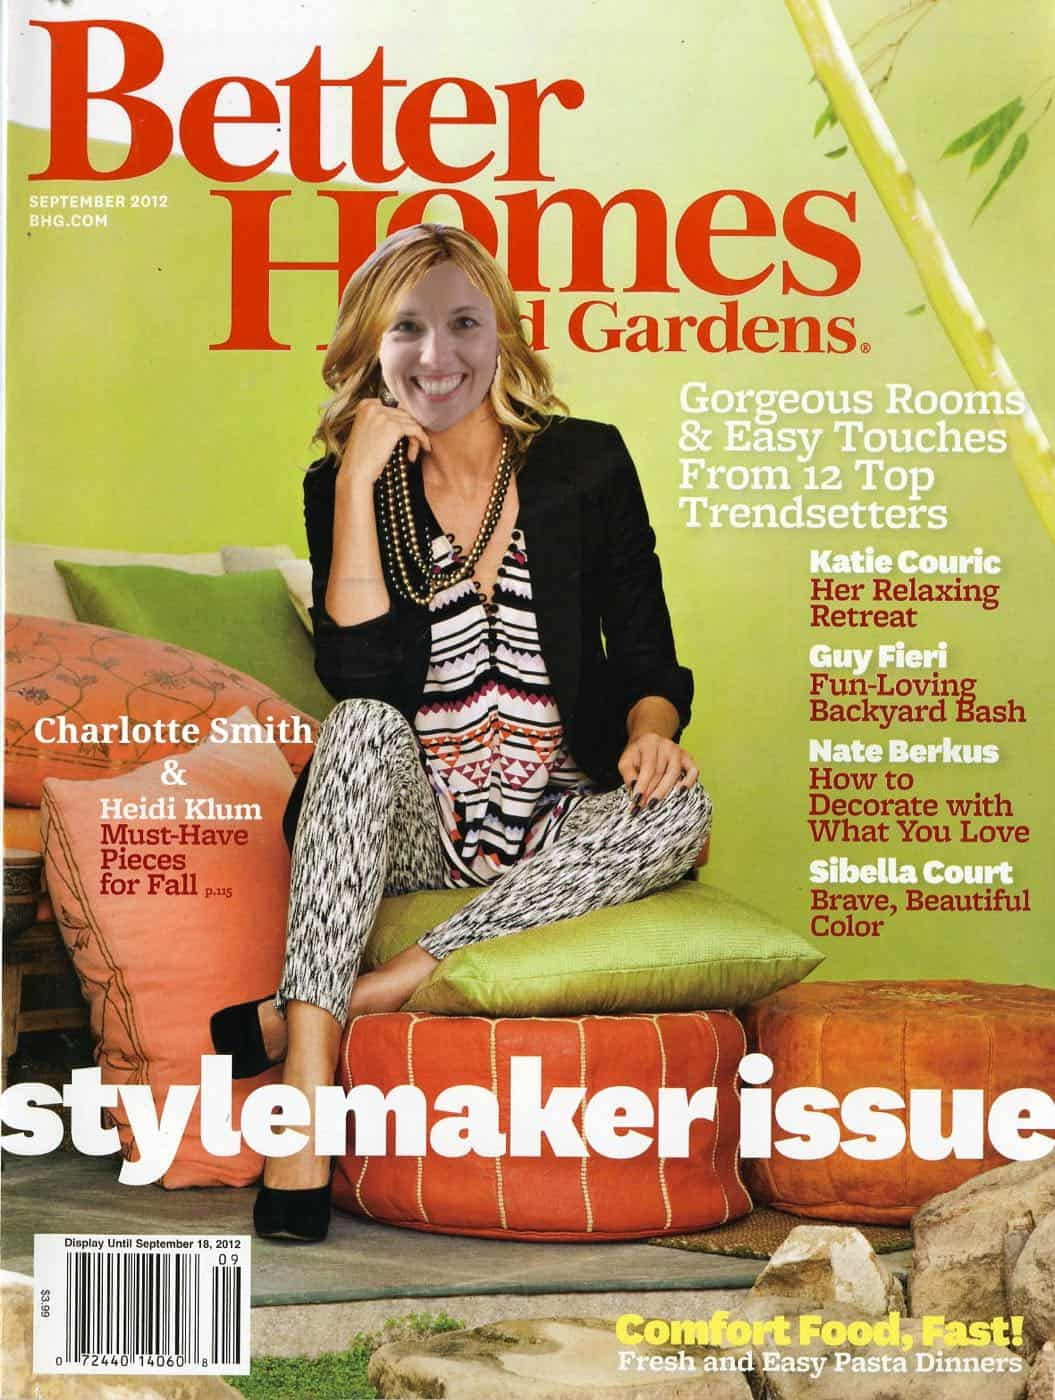 Sharing My Day With Better Homes And Gardens For Their I Did It Feature In